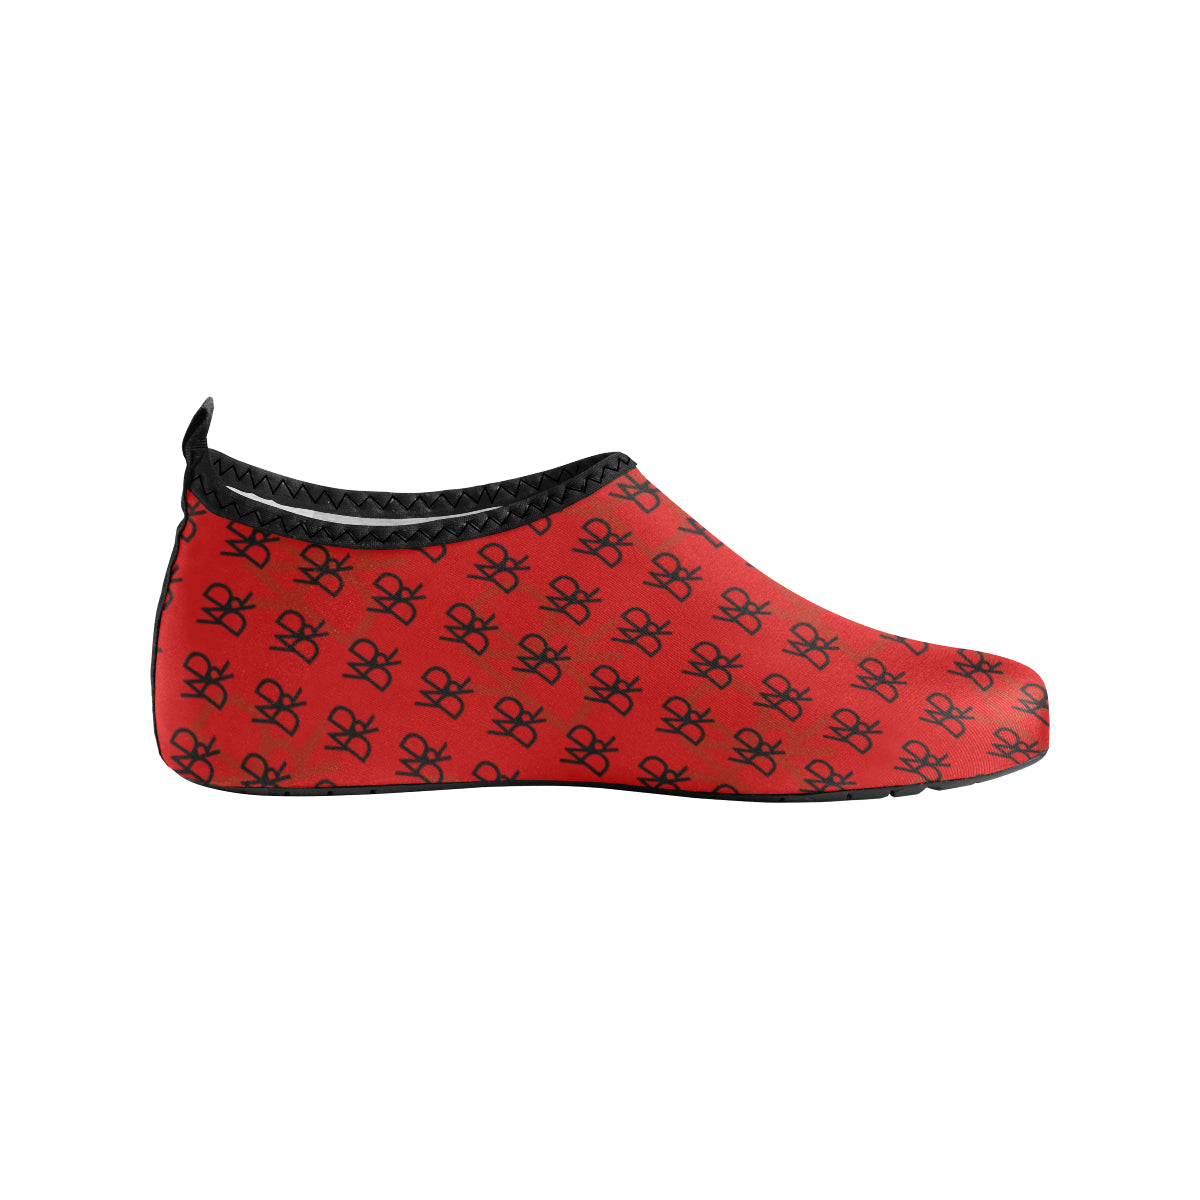 WddR Hydro1 Red Slip-On Shoes